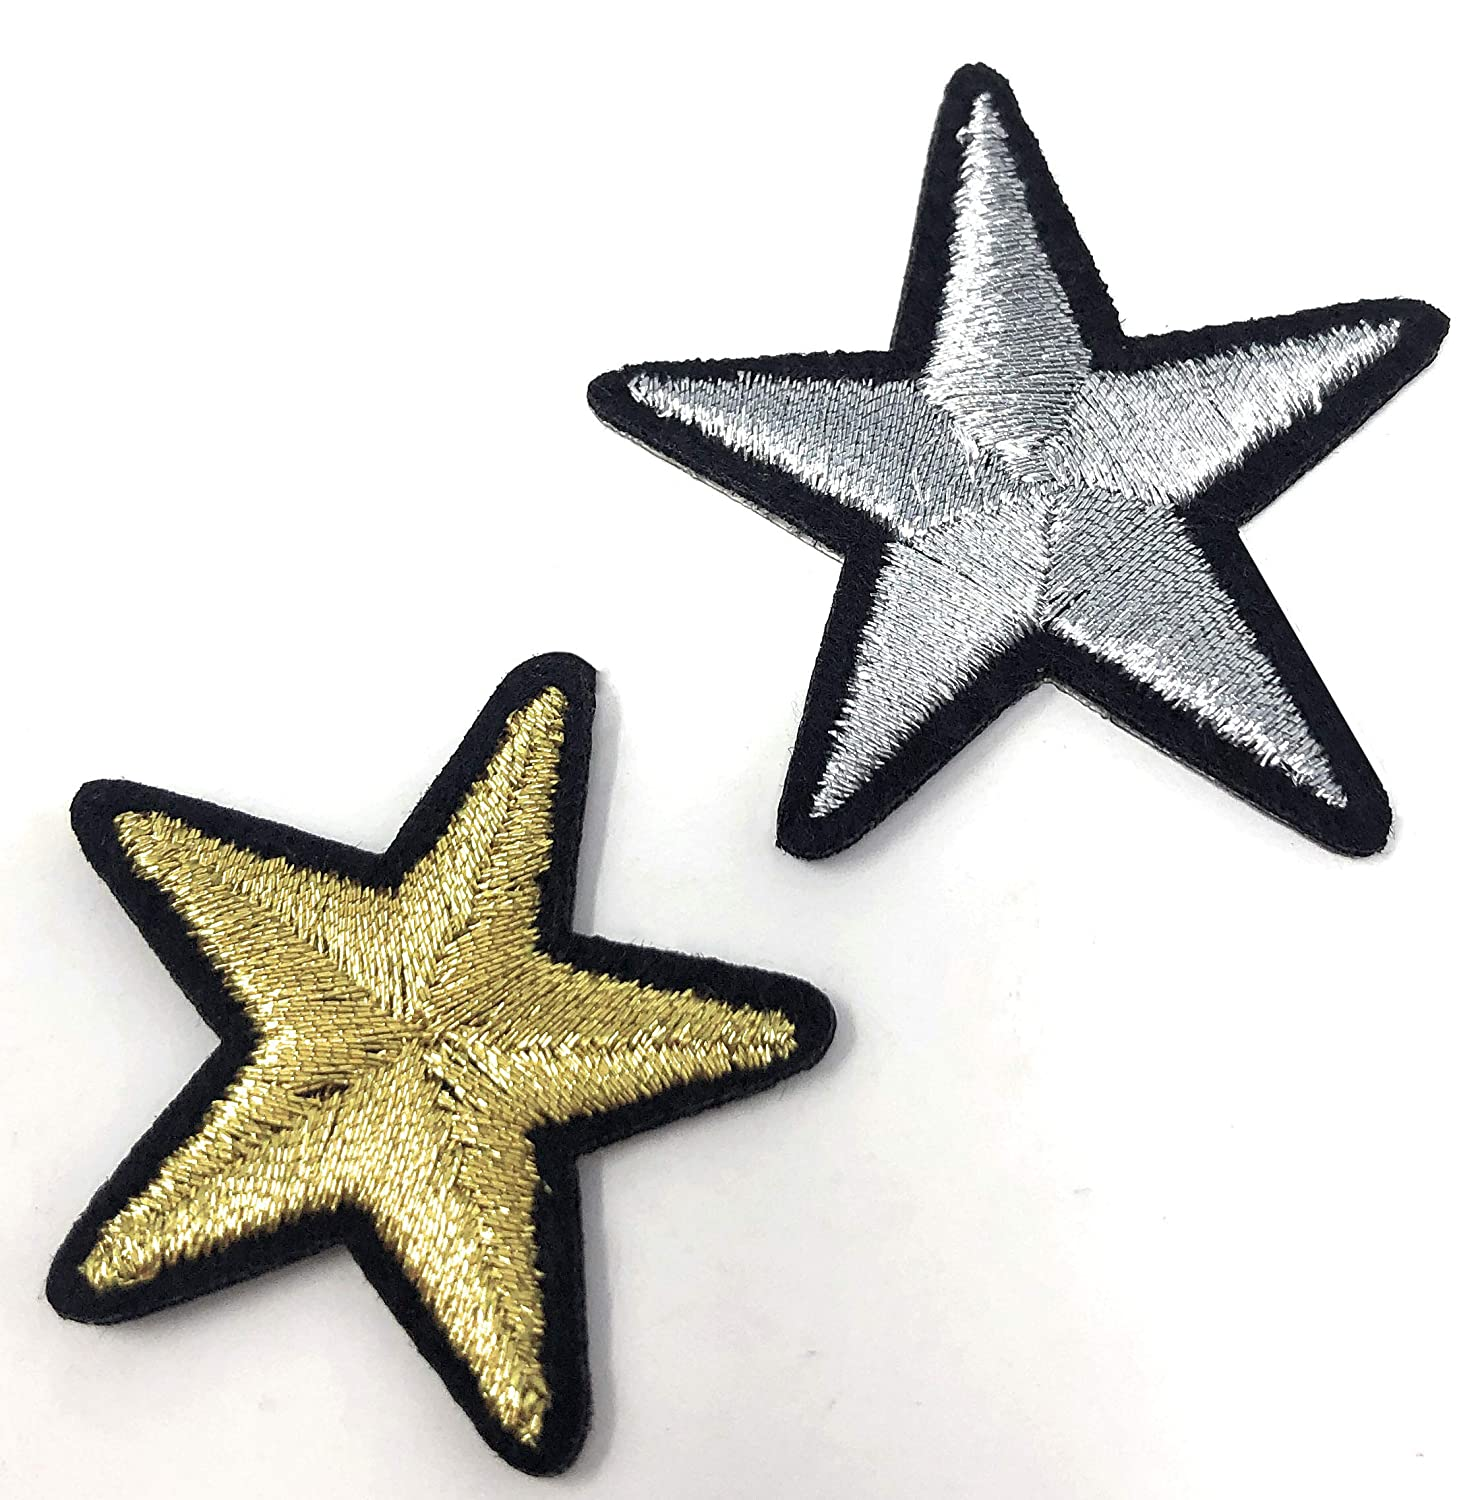 Shoes Hats Rusoji 25Pcs Multi-Color Star Iron-On//Sew-On Embroidered Applique Badge Patch for DIY Clothing Projects T-Shirt Jeans and Bags Jacket